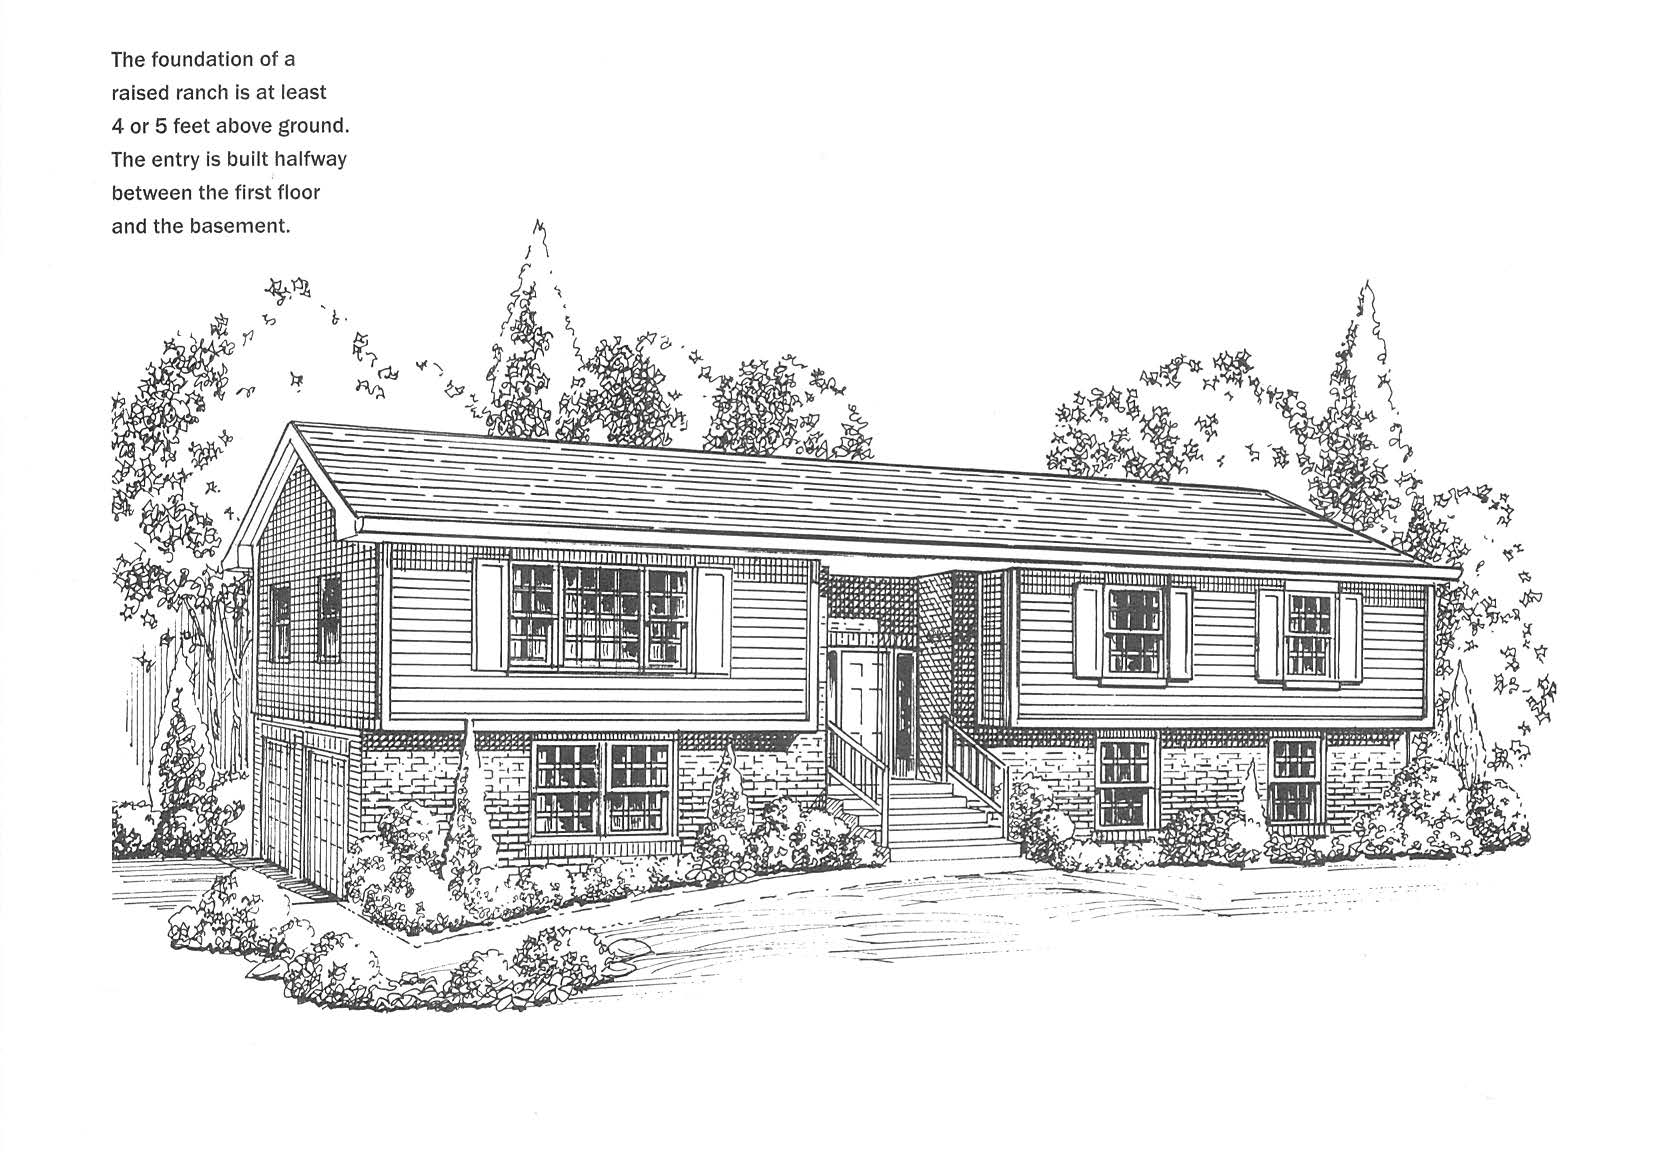 A GC's Responsibilities for a Modular Raised Ranch Modular Raised Ranch Kitchen Ideas on lake house kitchen ideas, saltbox kitchen ideas, historic kitchen ideas, adirondack kitchen ideas, country blue kitchen ideas, garden kitchen ideas, 1940s kitchen ideas, lowe's kitchen ideas, bungalow kitchen ideas, yurt kitchen ideas, row house kitchen ideas, vintage small kitchen ideas, shabby chic kitchen ideas, mobile kitchen ideas, 2015 kitchen ideas, tuscan kitchen ideas, carriage house kitchen ideas, brownstone kitchen ideas, do it yourself kitchen ideas, small cape kitchen ideas,